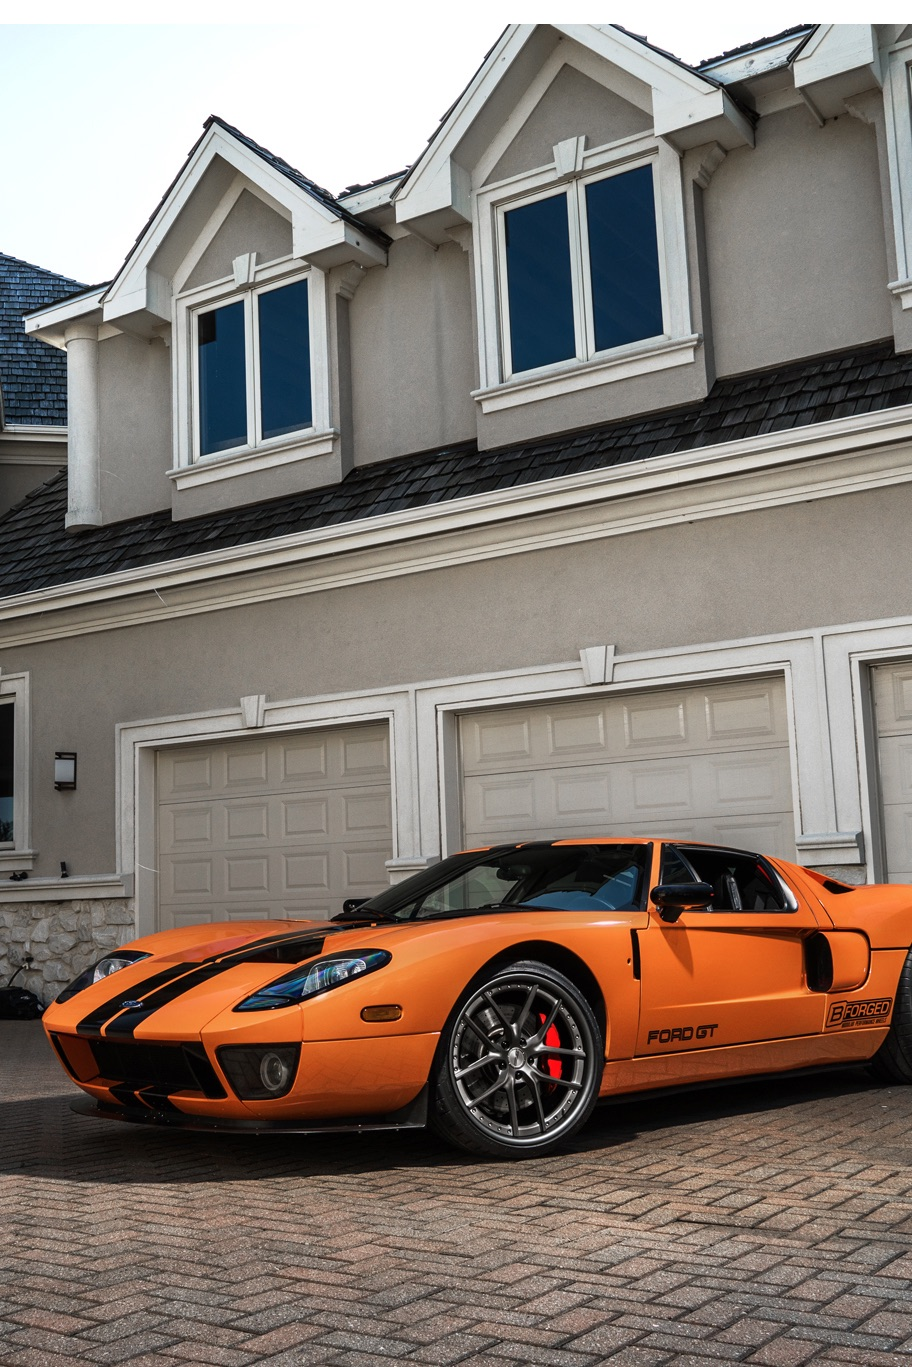 ford gt architecture house home building vehicle travel outdoors sportscar street luxury